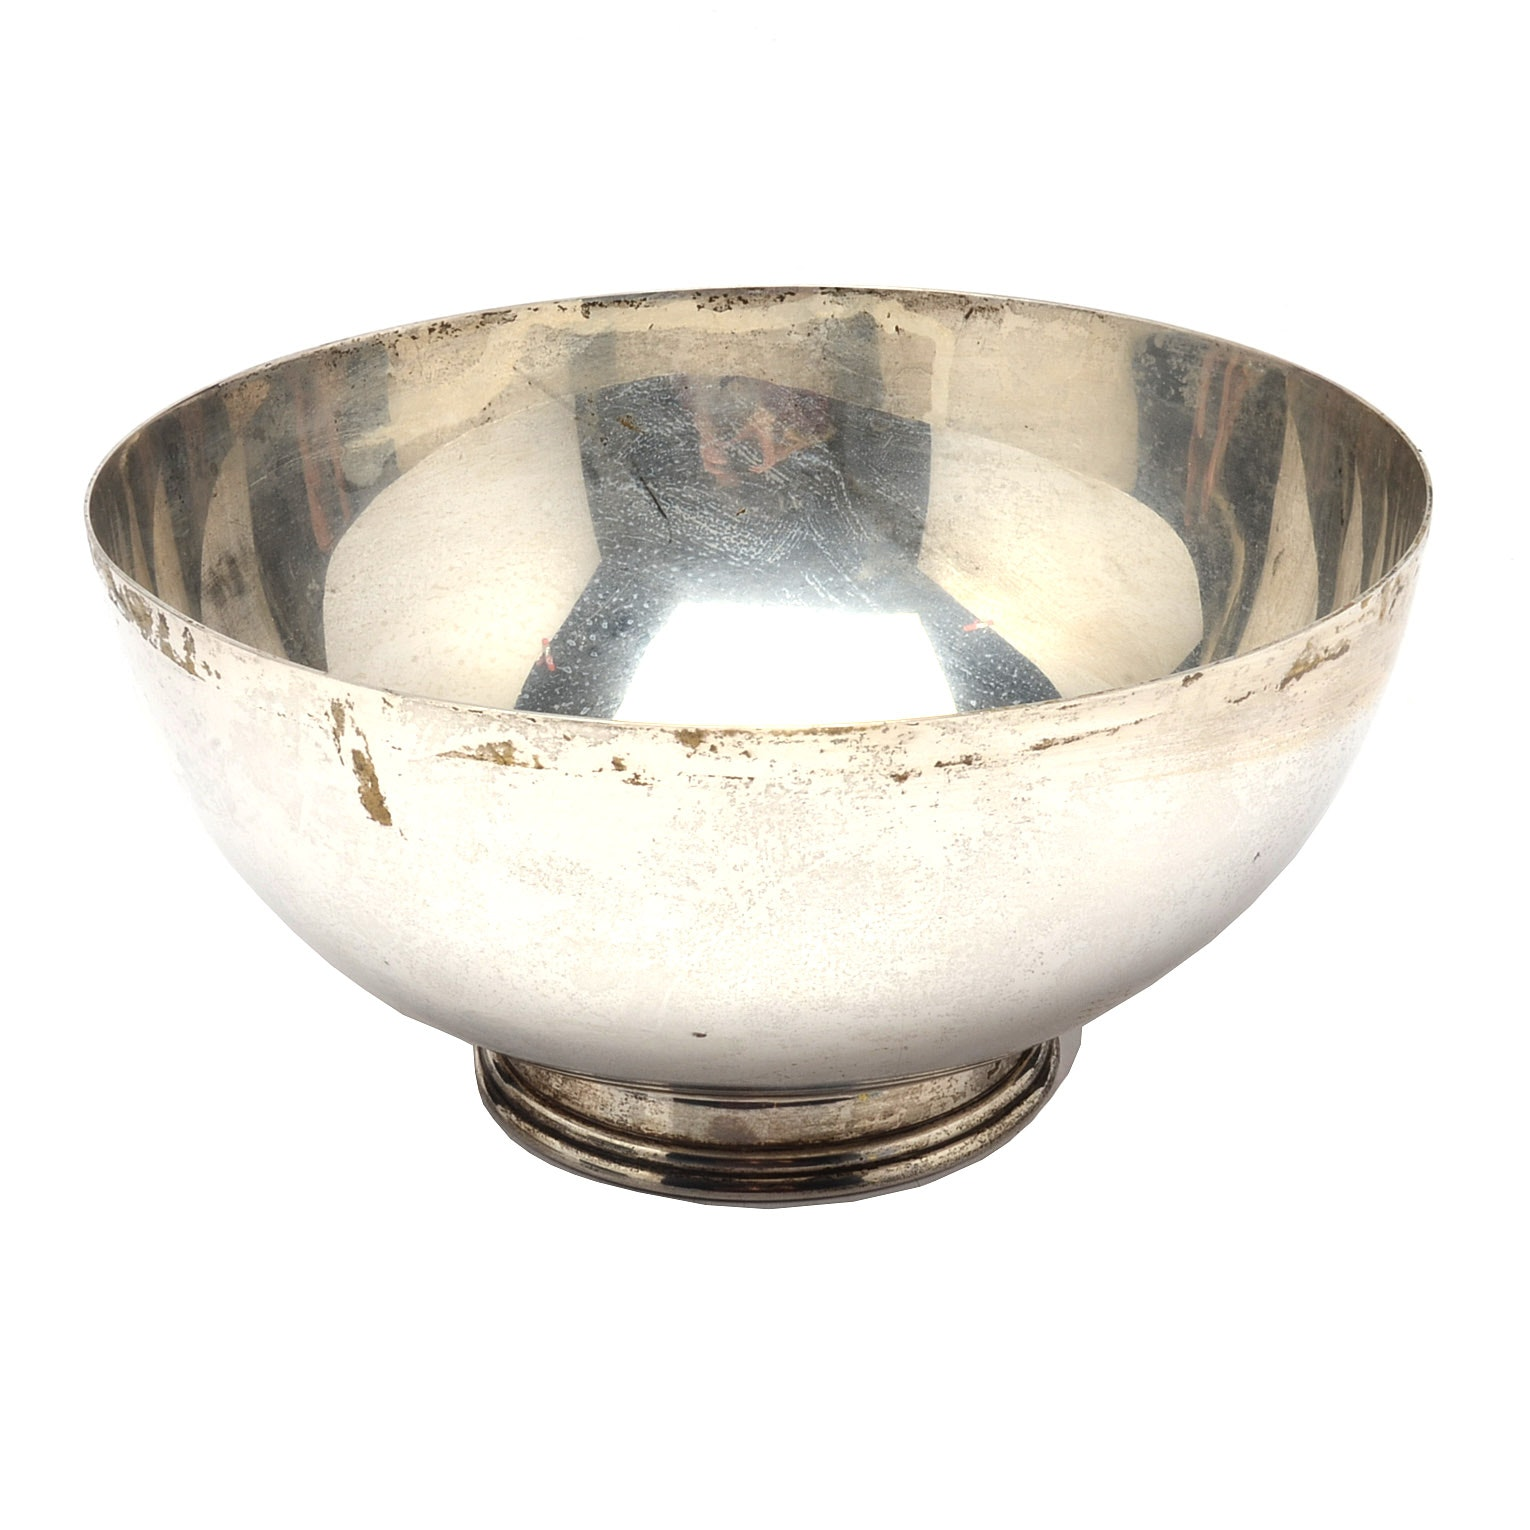 Ensko New York Wynkoop Reproduction Footed Sterling Silver Bowl